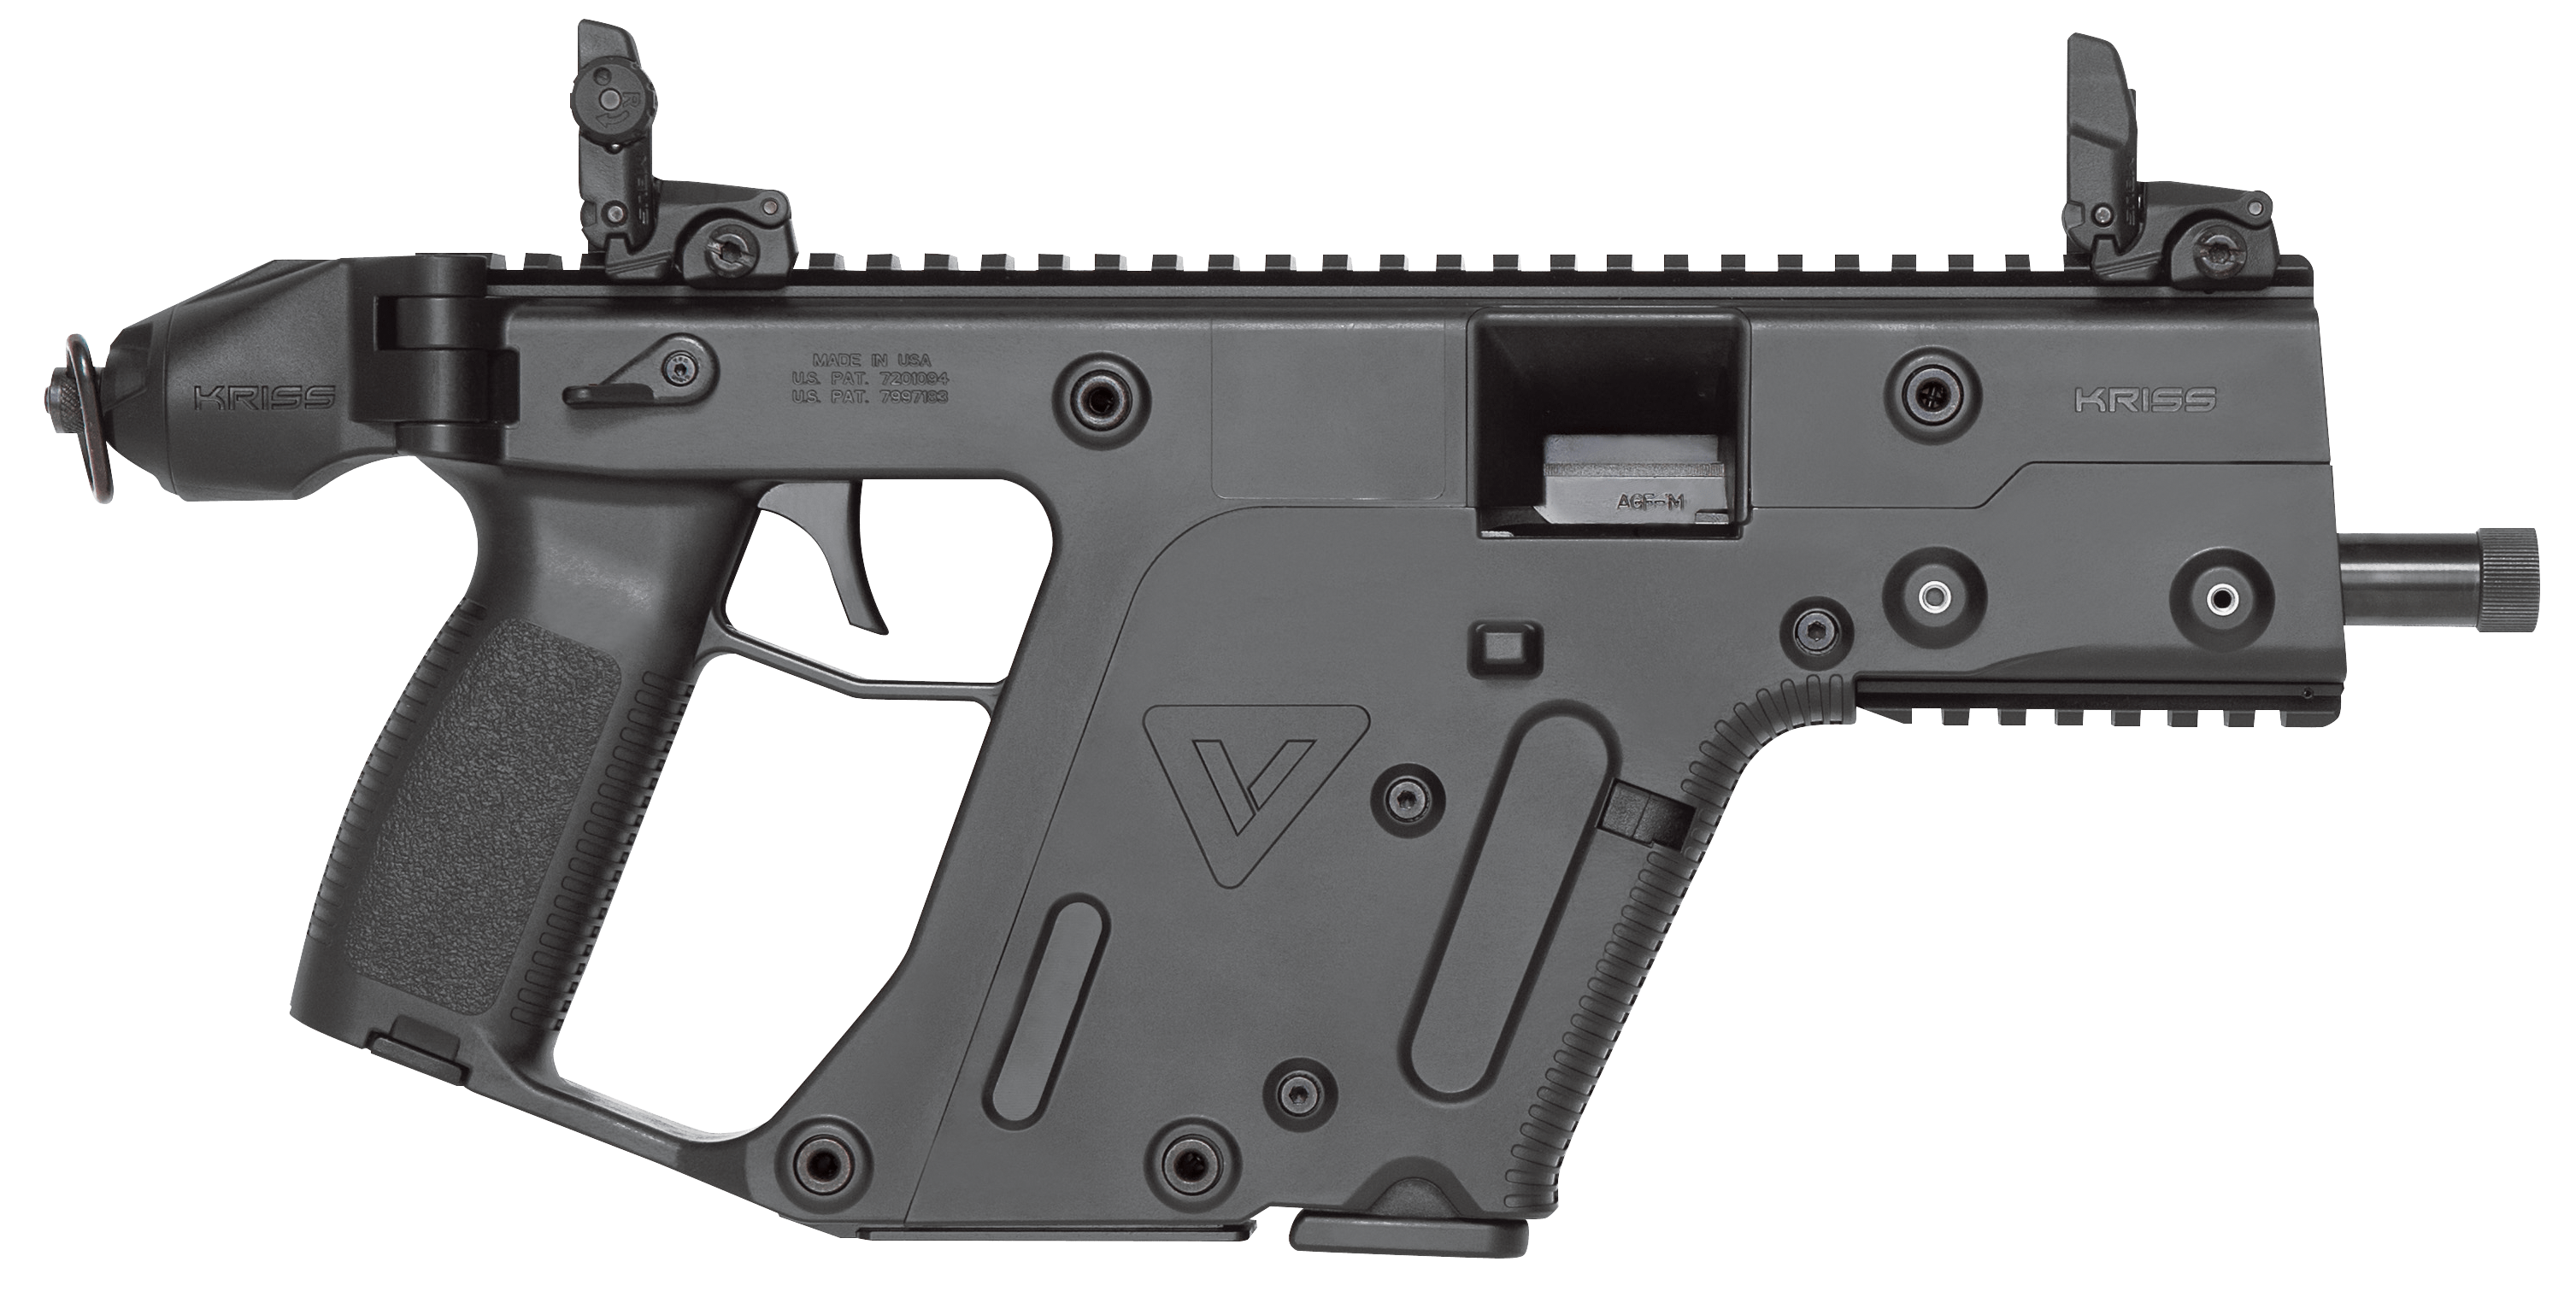 clip freeuse download Kriss usa kv pbl. 9mm vector.